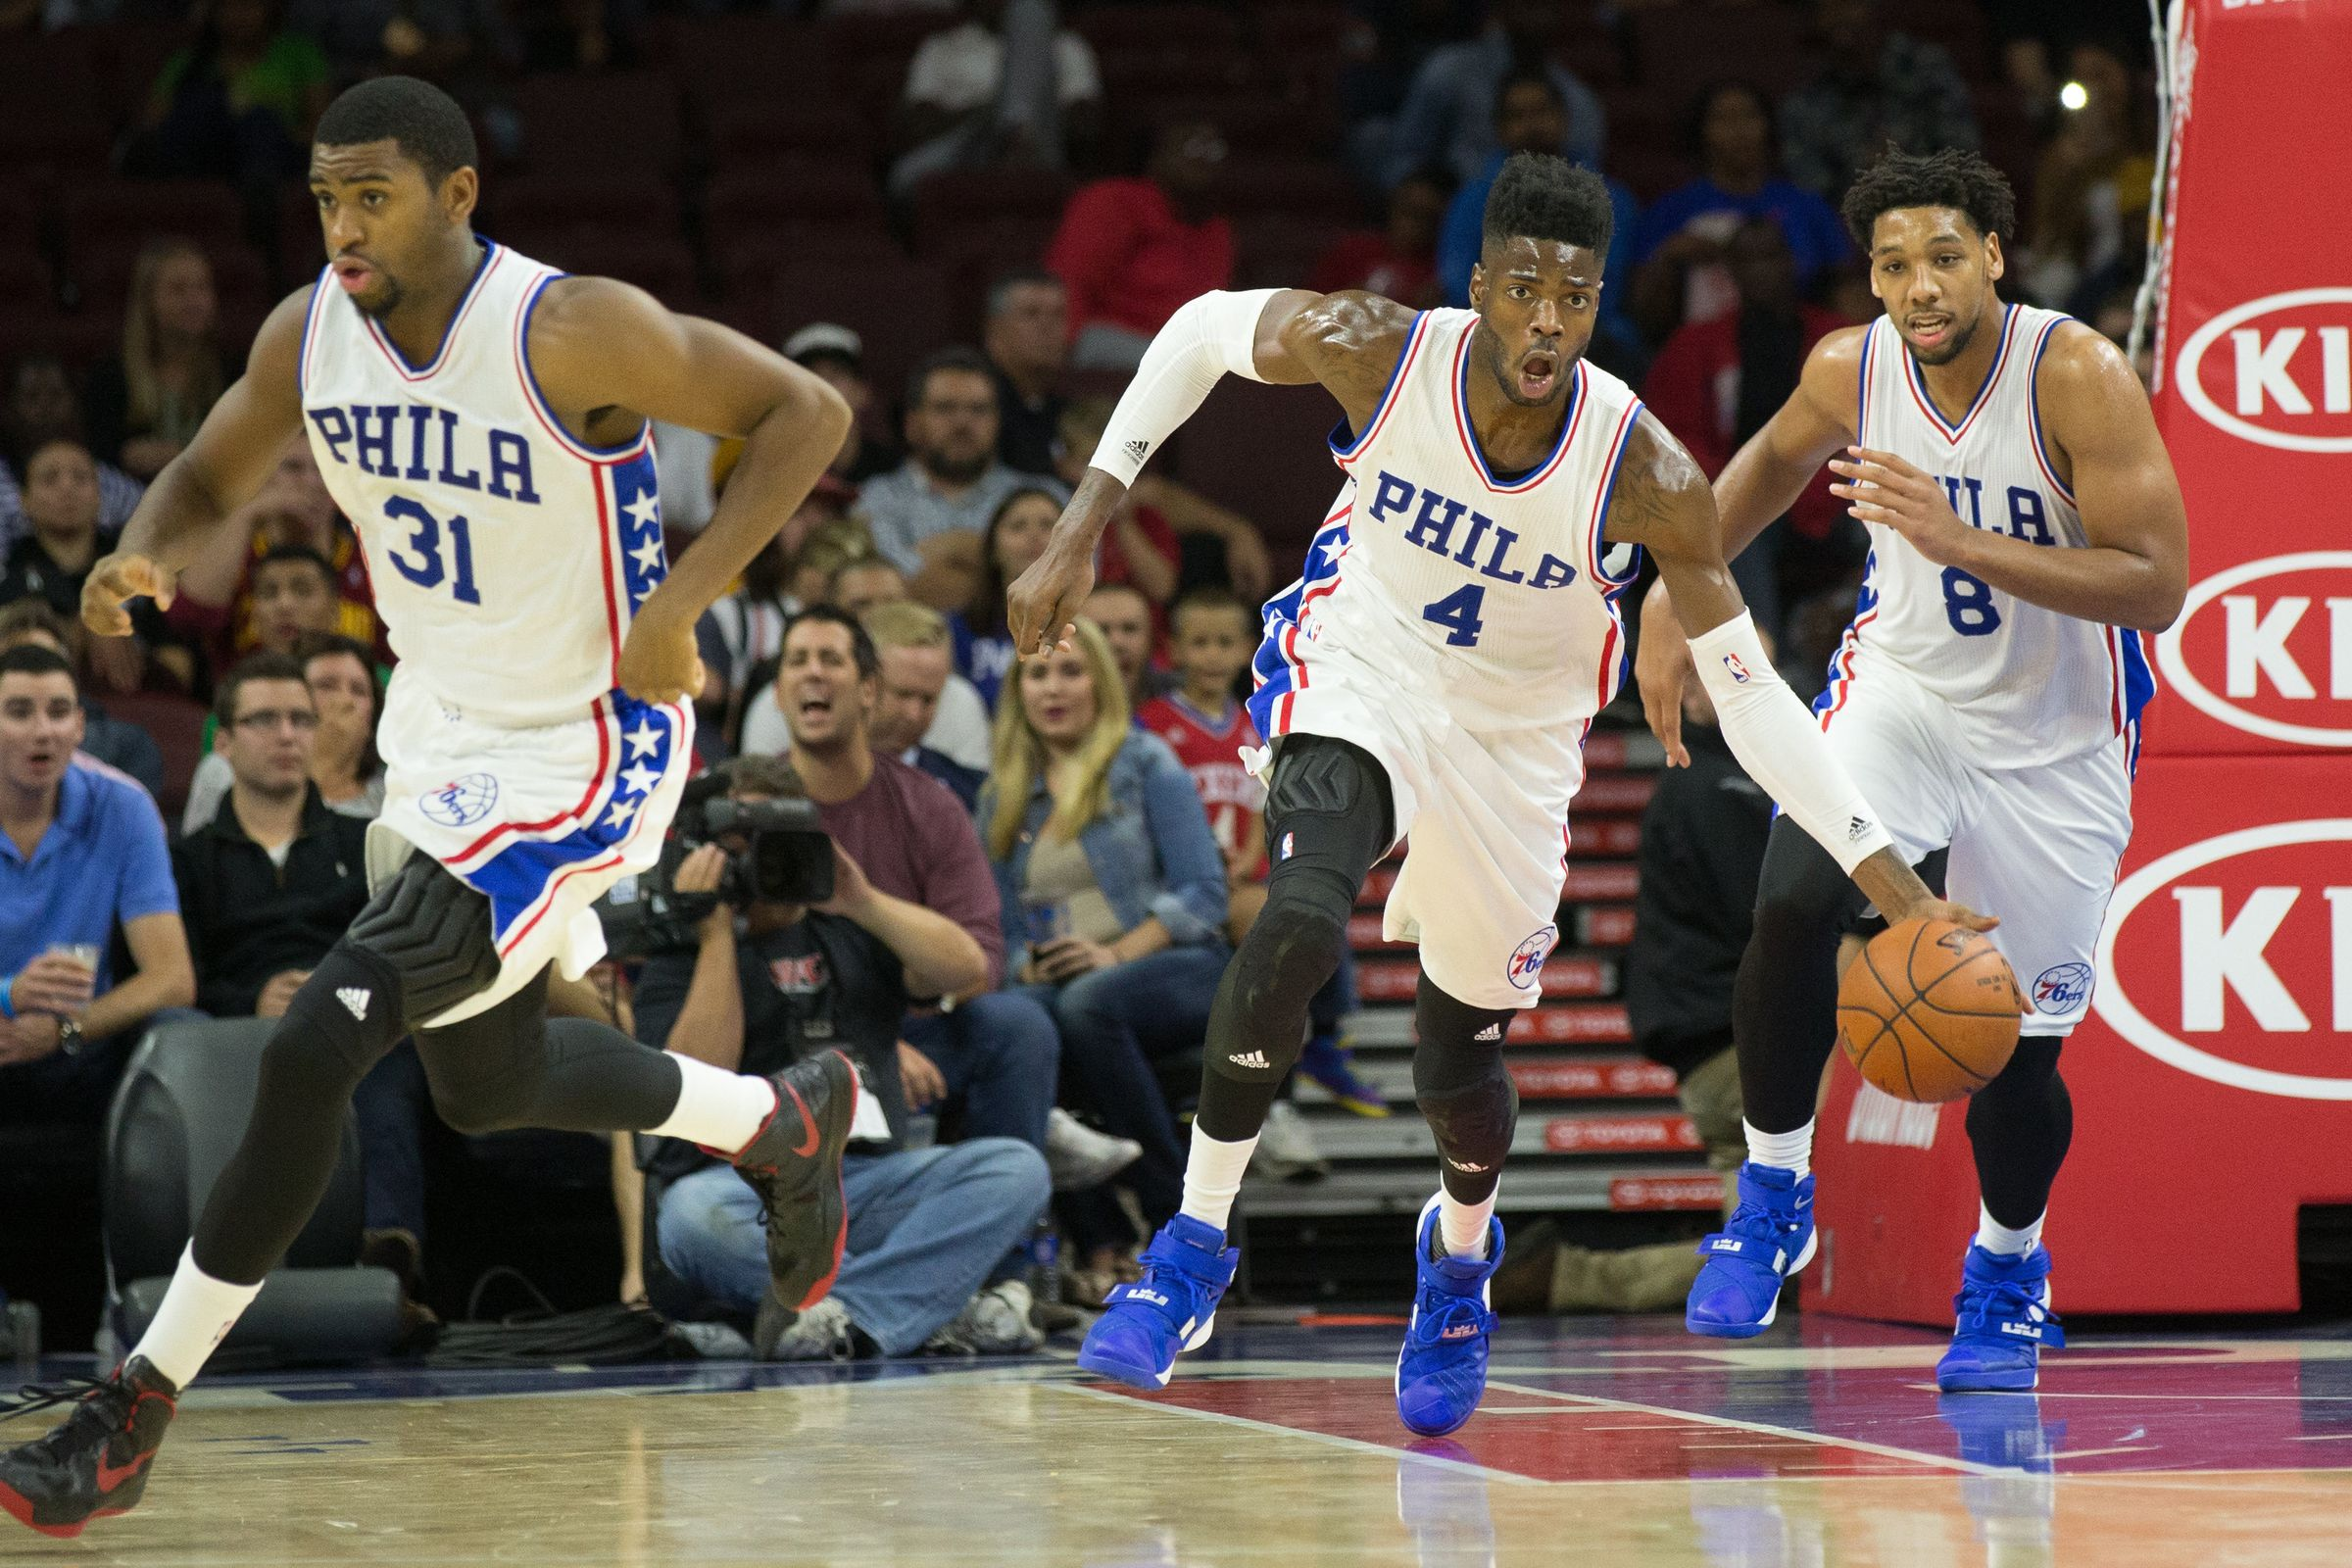 The Philadelphia 76ers will need to get moving if they hope to not finish with one